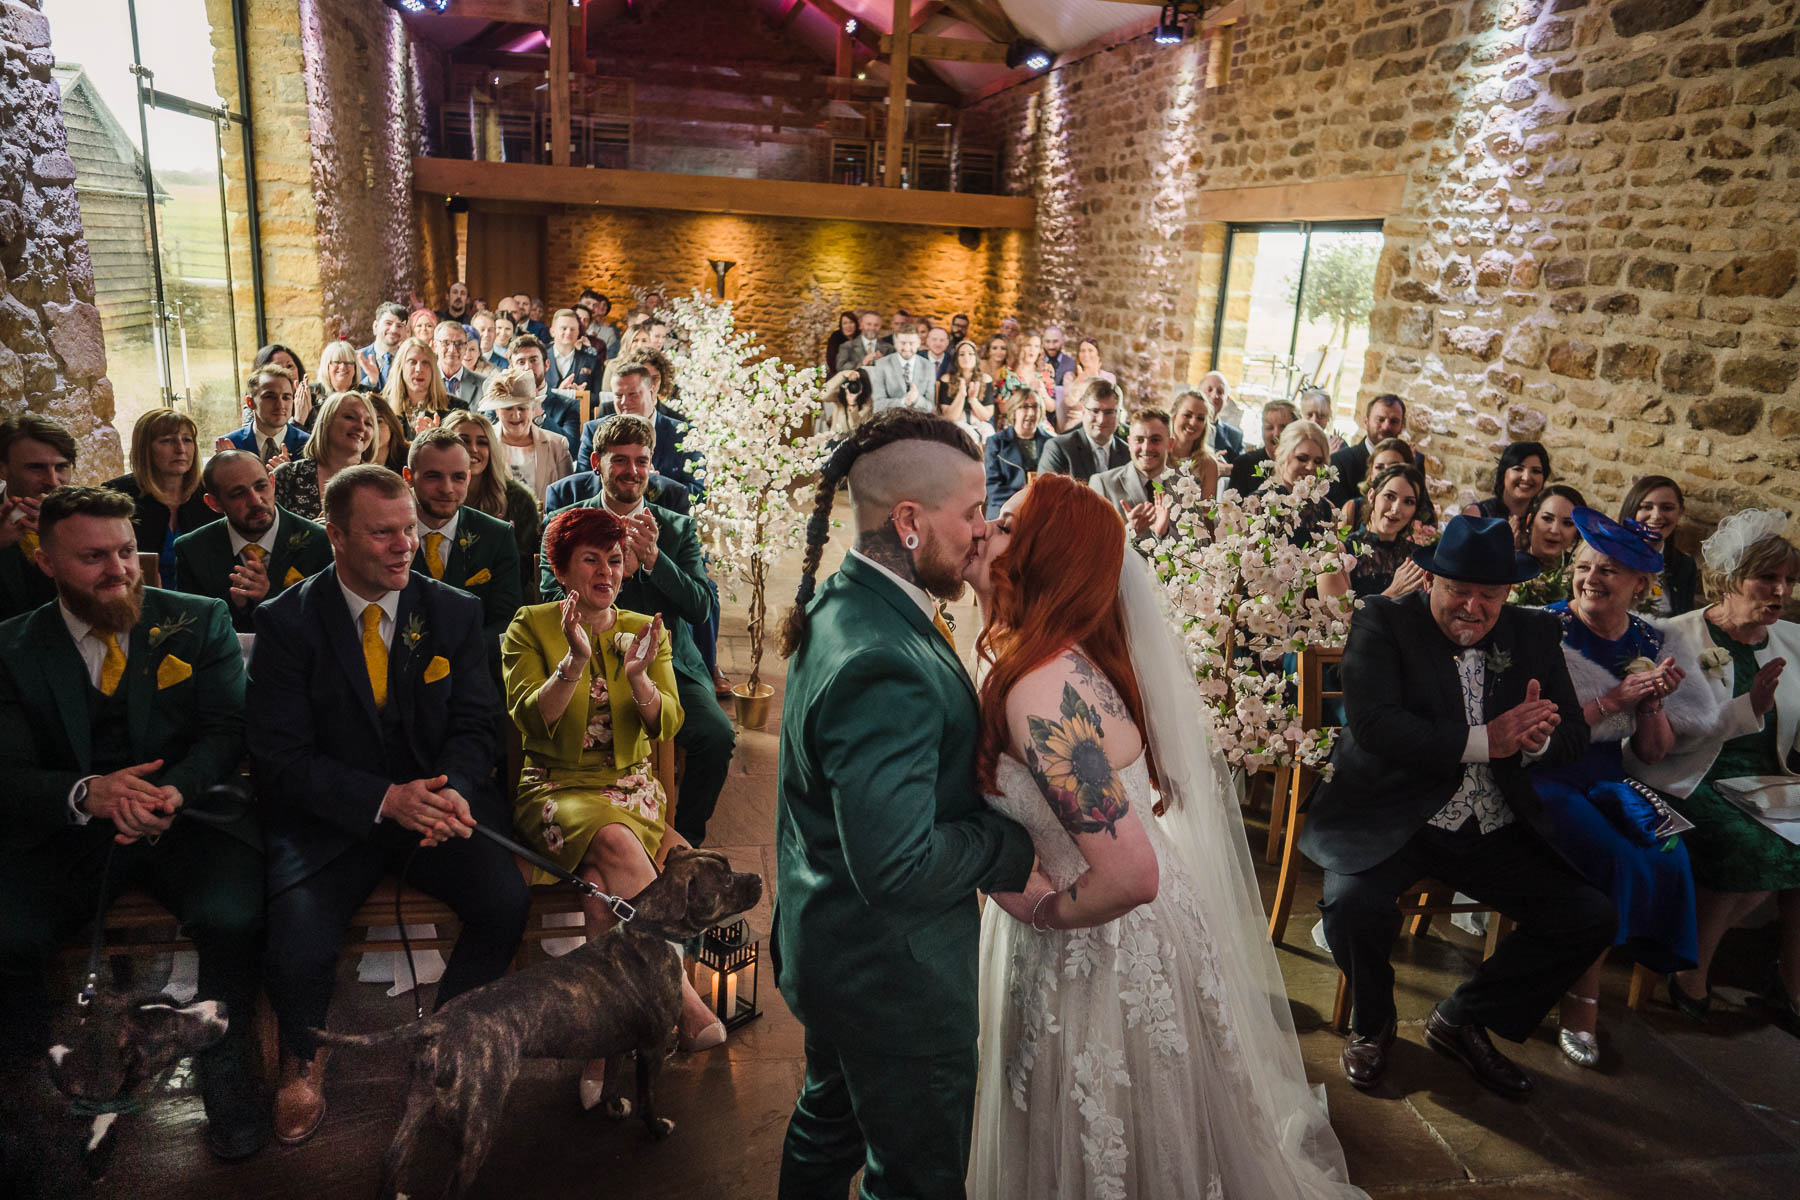 Alternative couple wed in dodford barn in front of guests